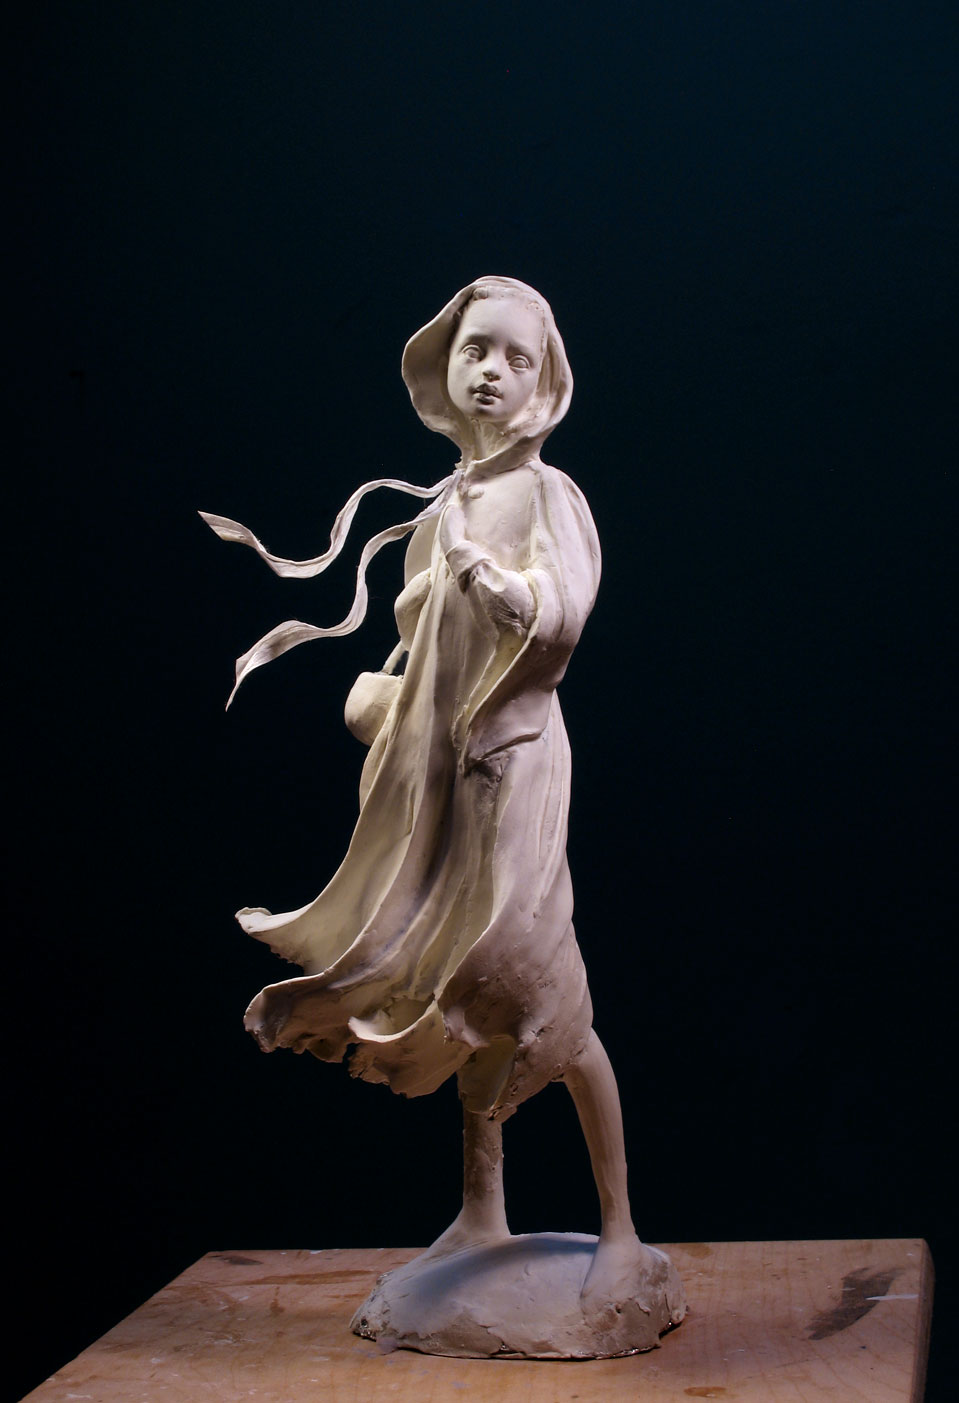 Just coming along in Premier air dry clay... a very smooth, soft clay to work with... about 13+ inches tall